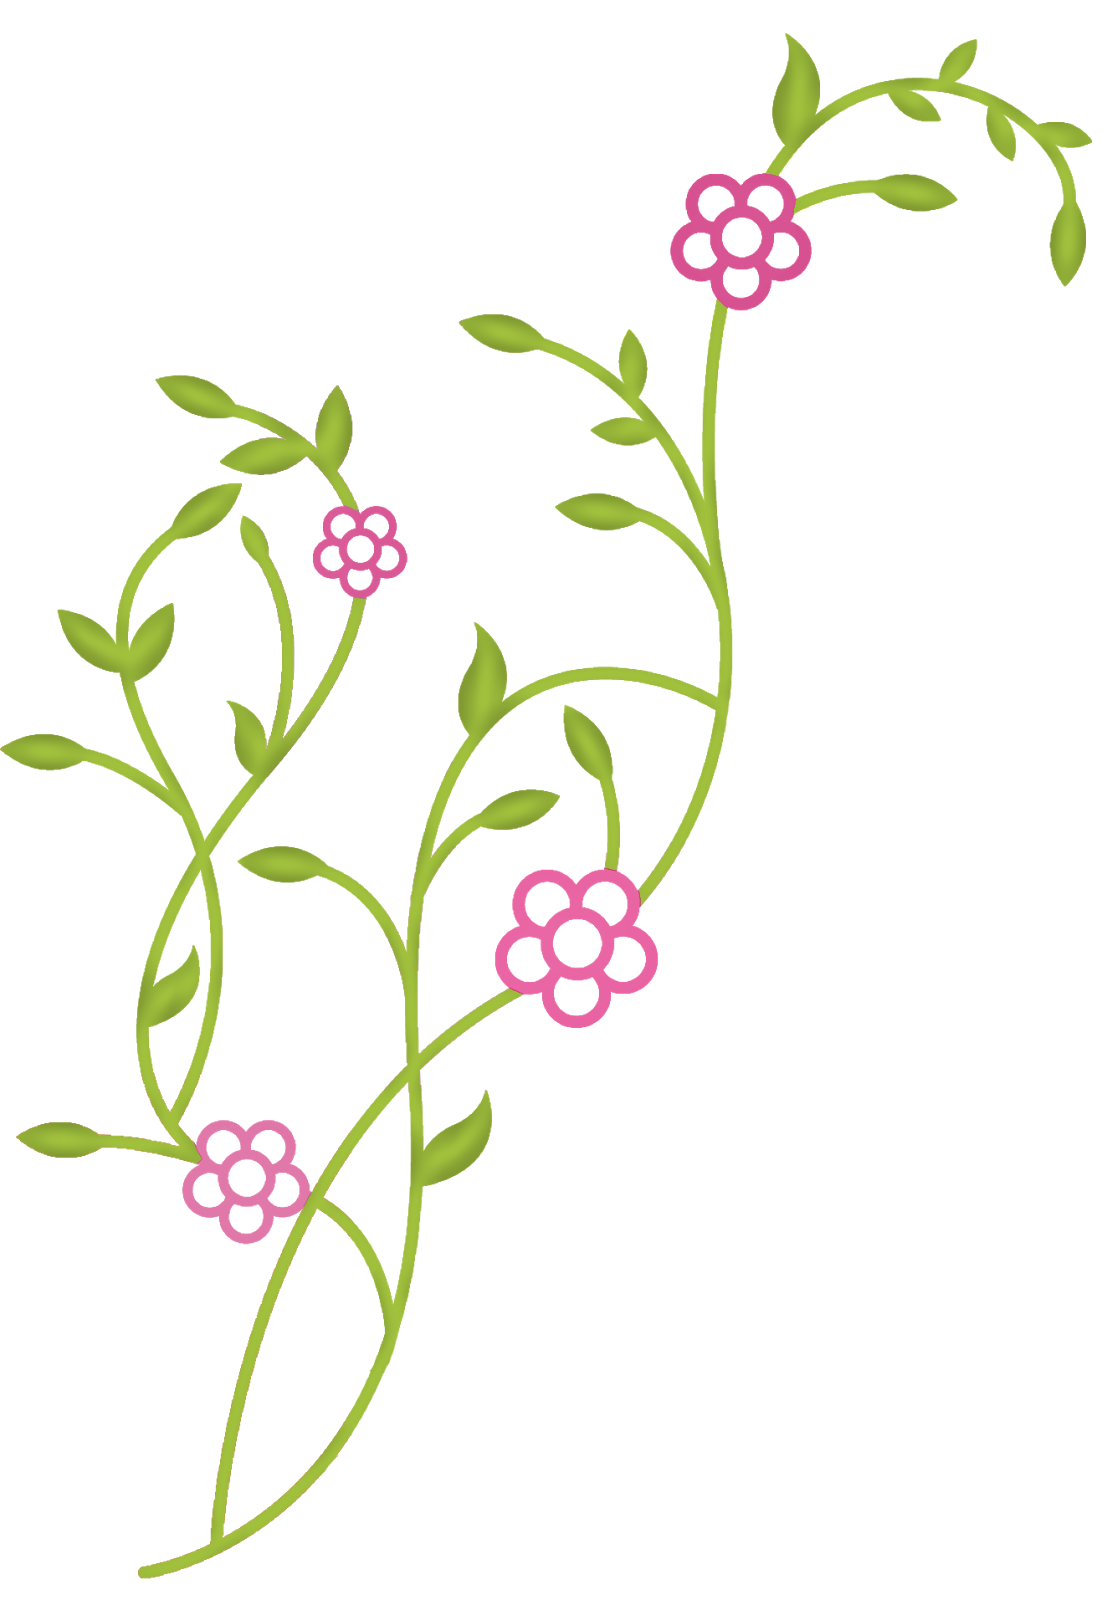 Fiesta clipart line. Enchanted garden images oh